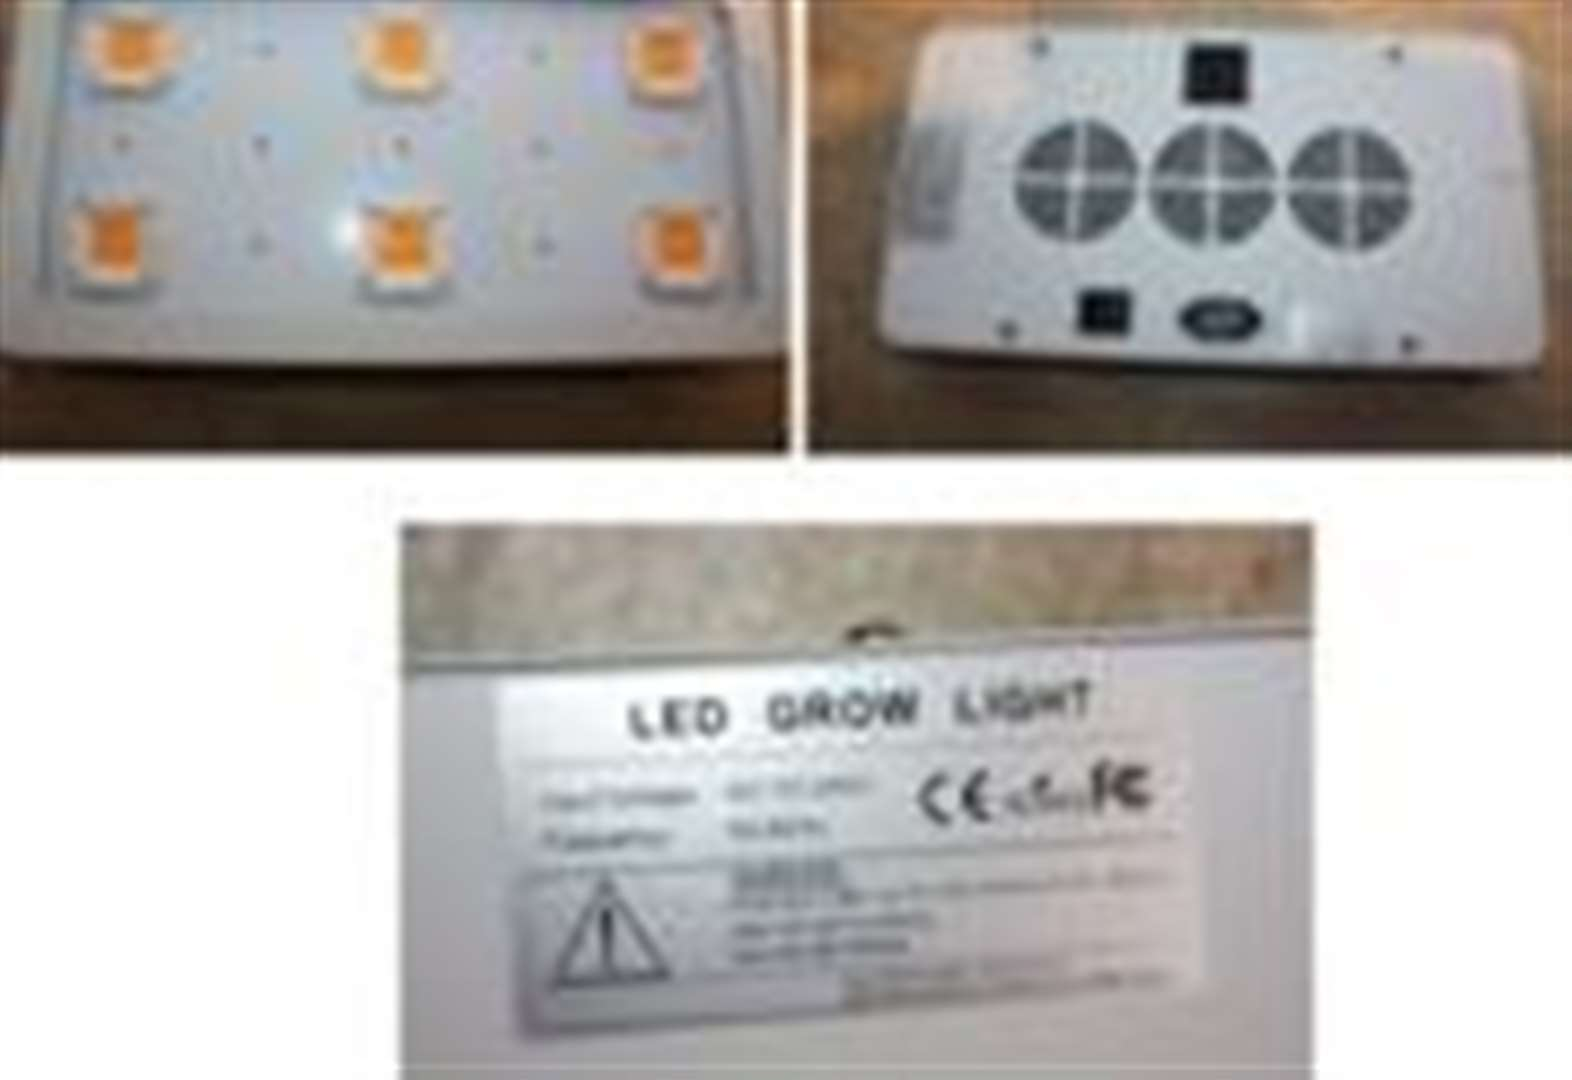 Lethal drug lamps seized at Stansted Airport by trading standards